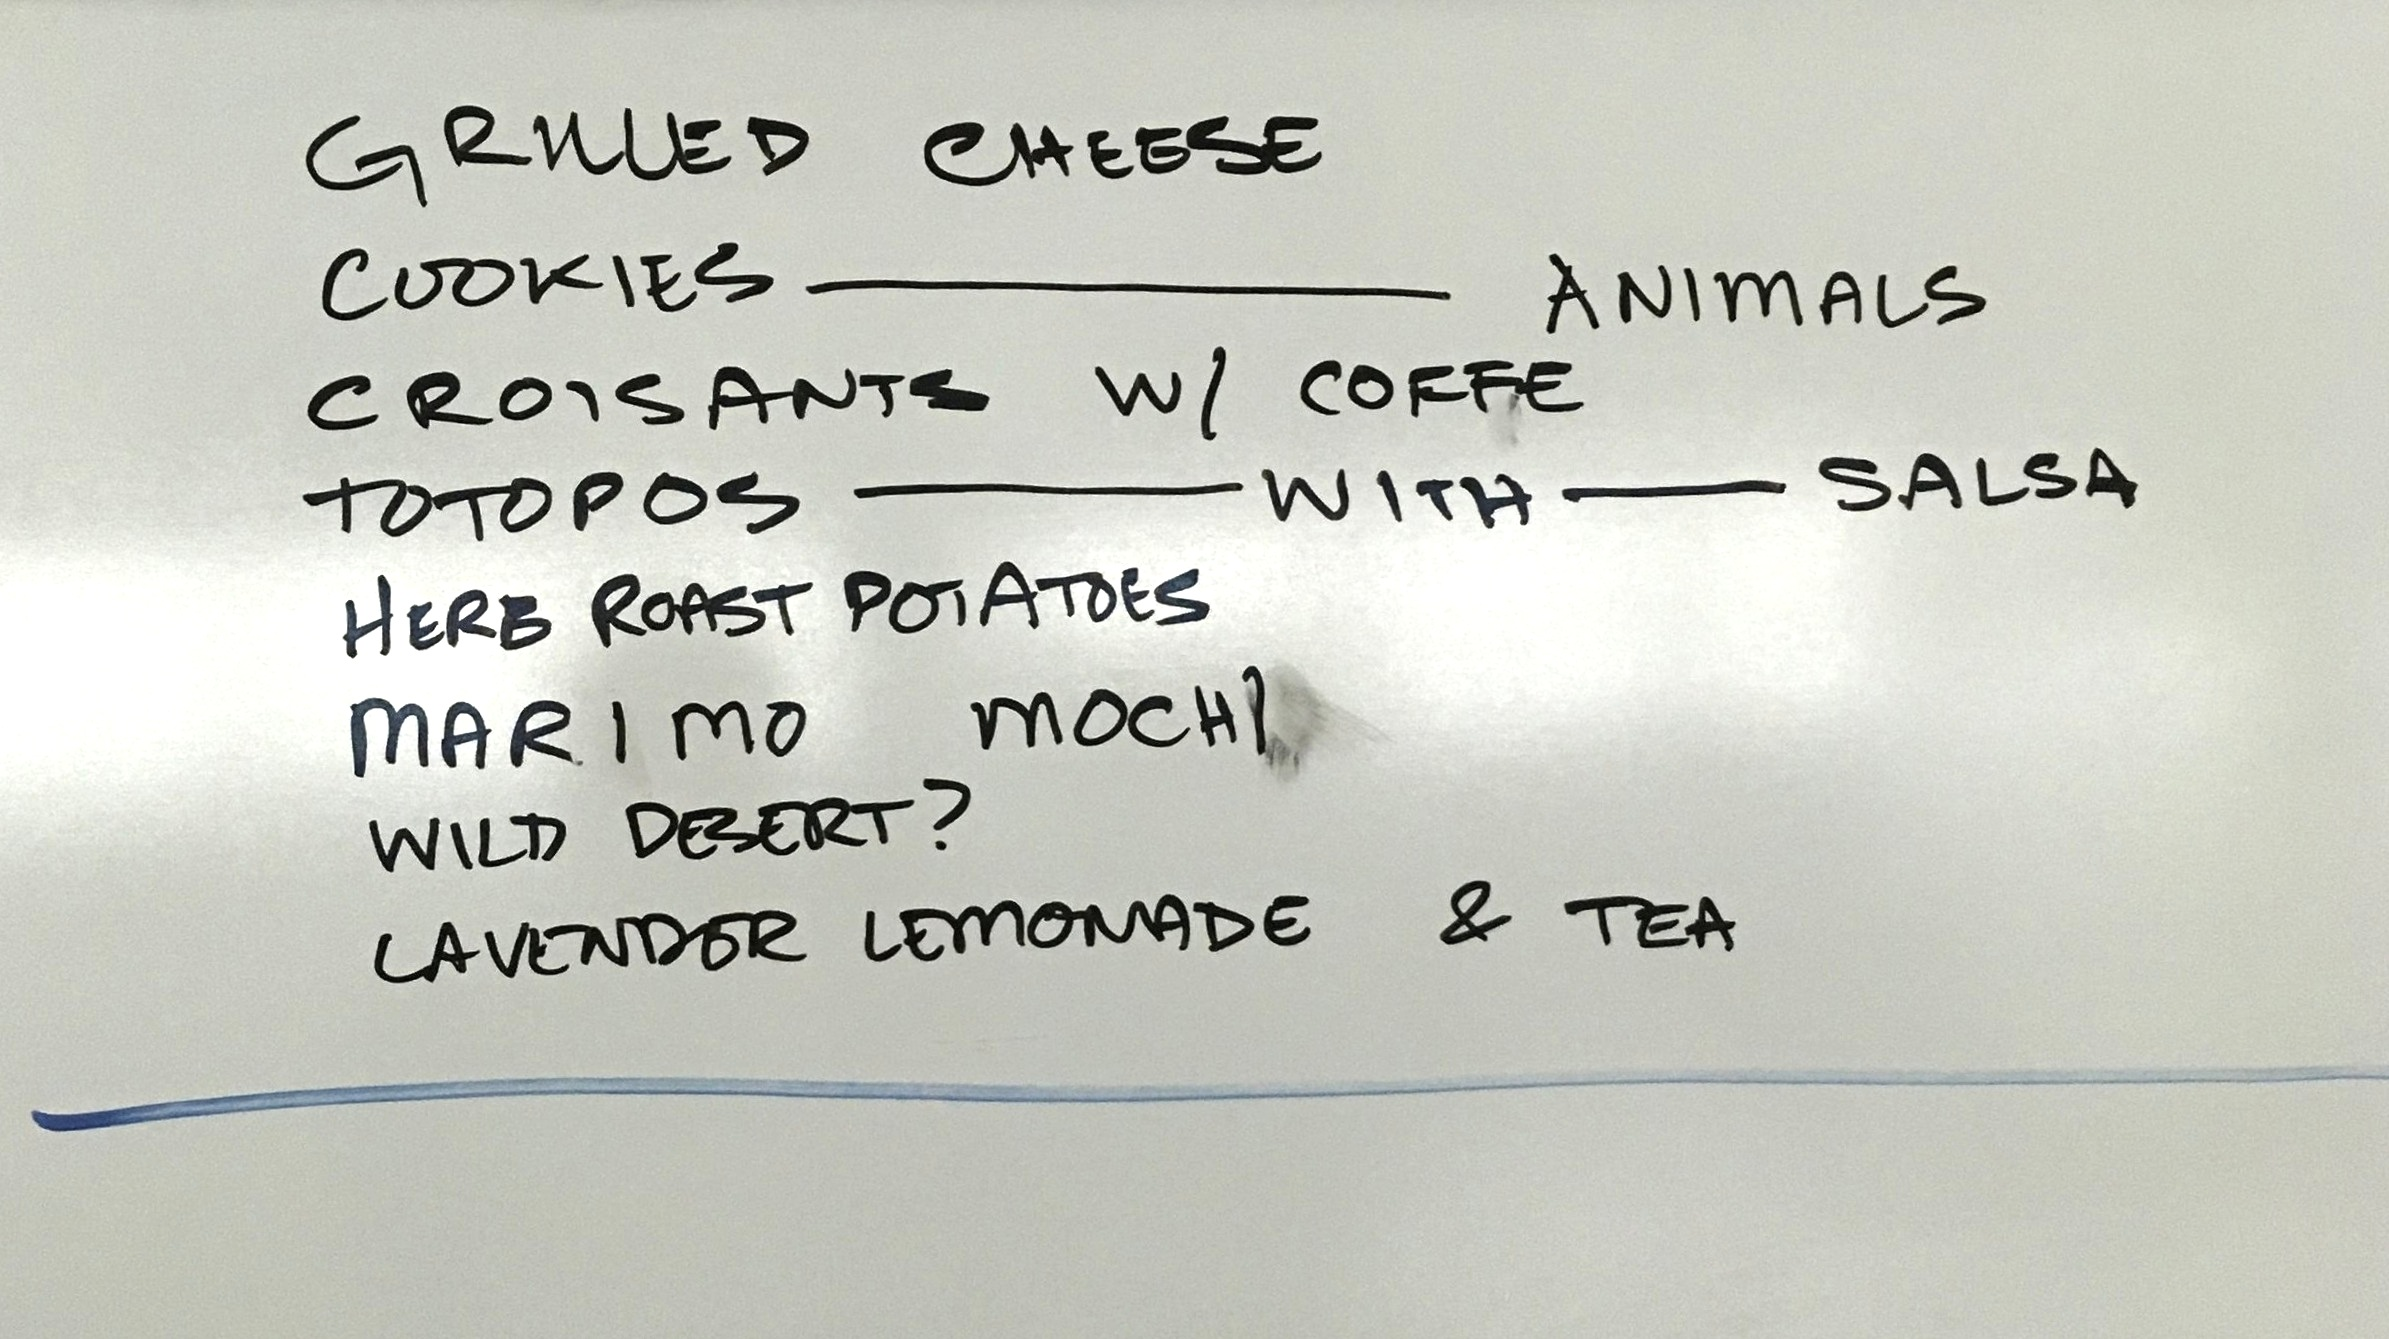 The treats list is shaping up.